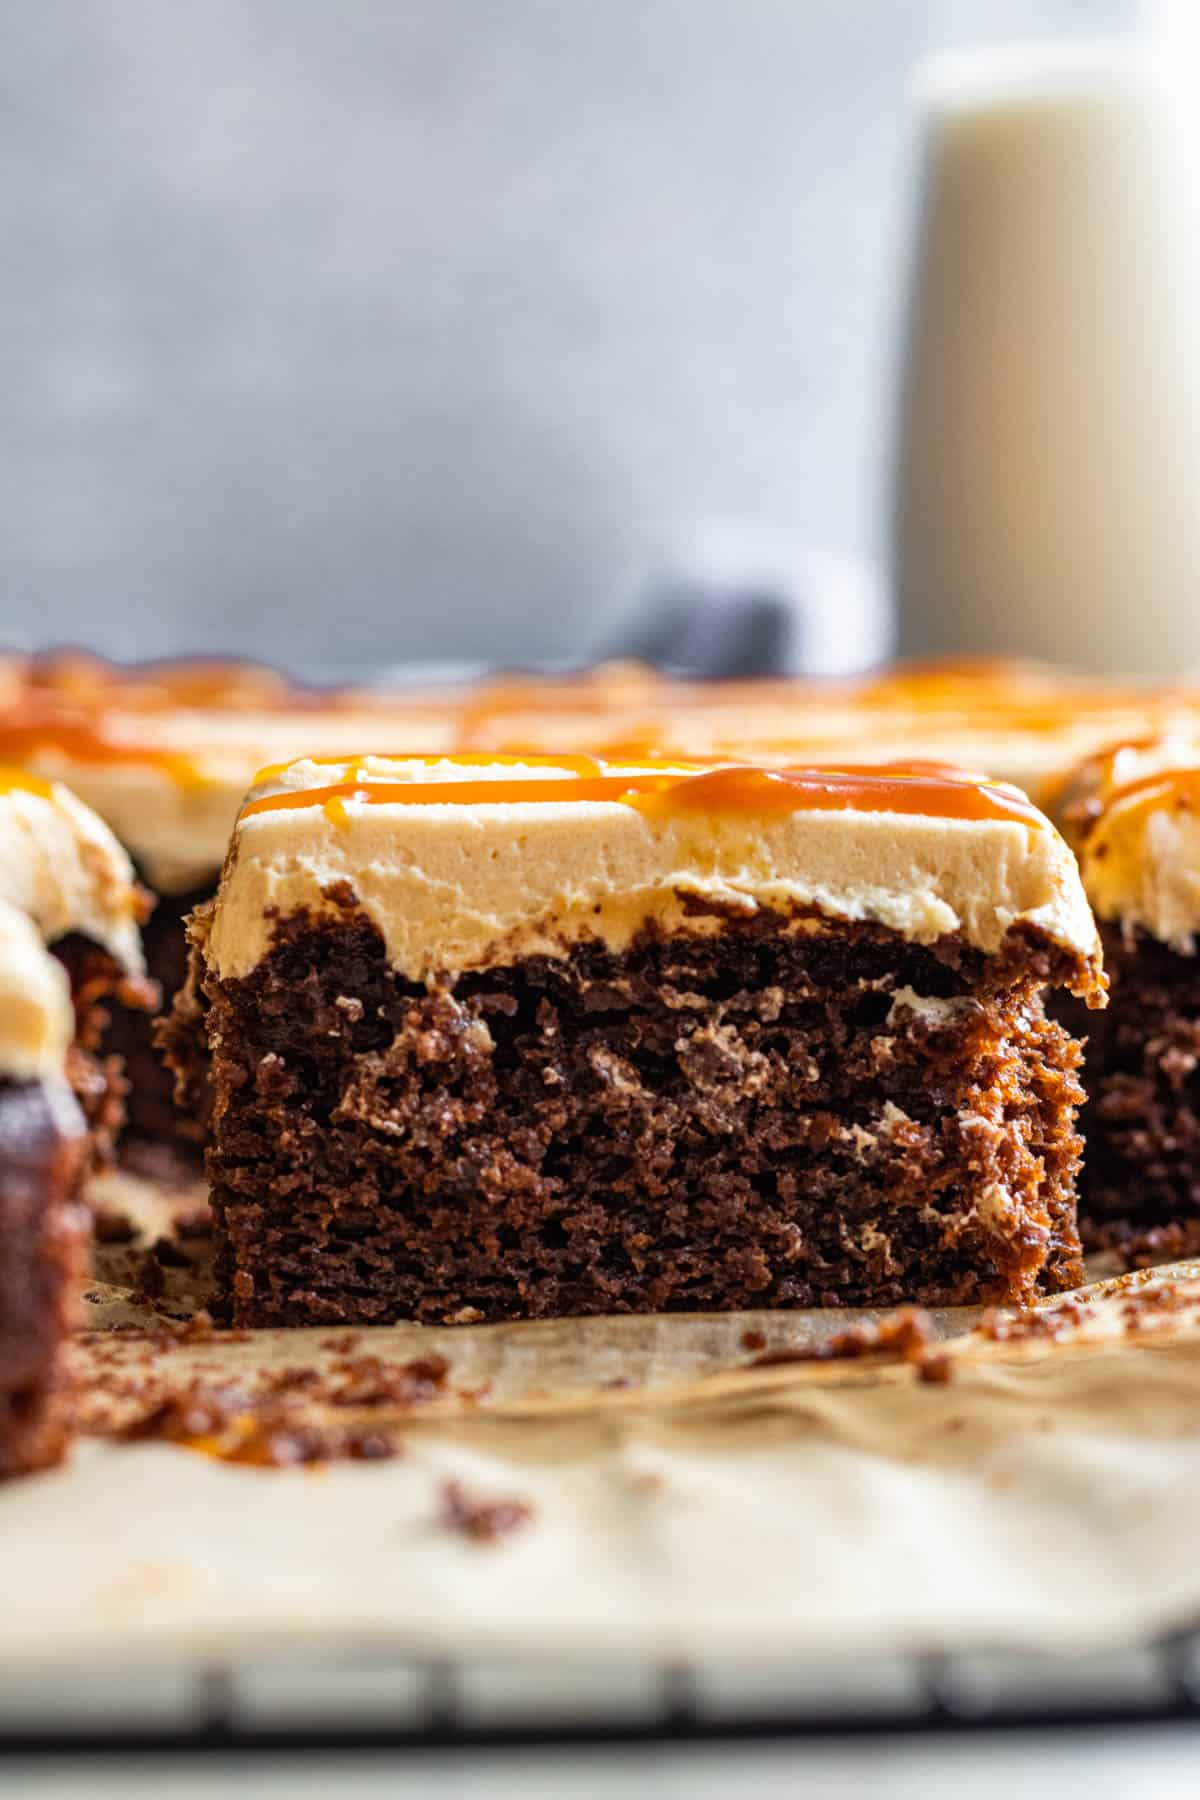 slice of chocolate cake with salted caramel frosting and caramel drizzle on top. Glass of milk in background.